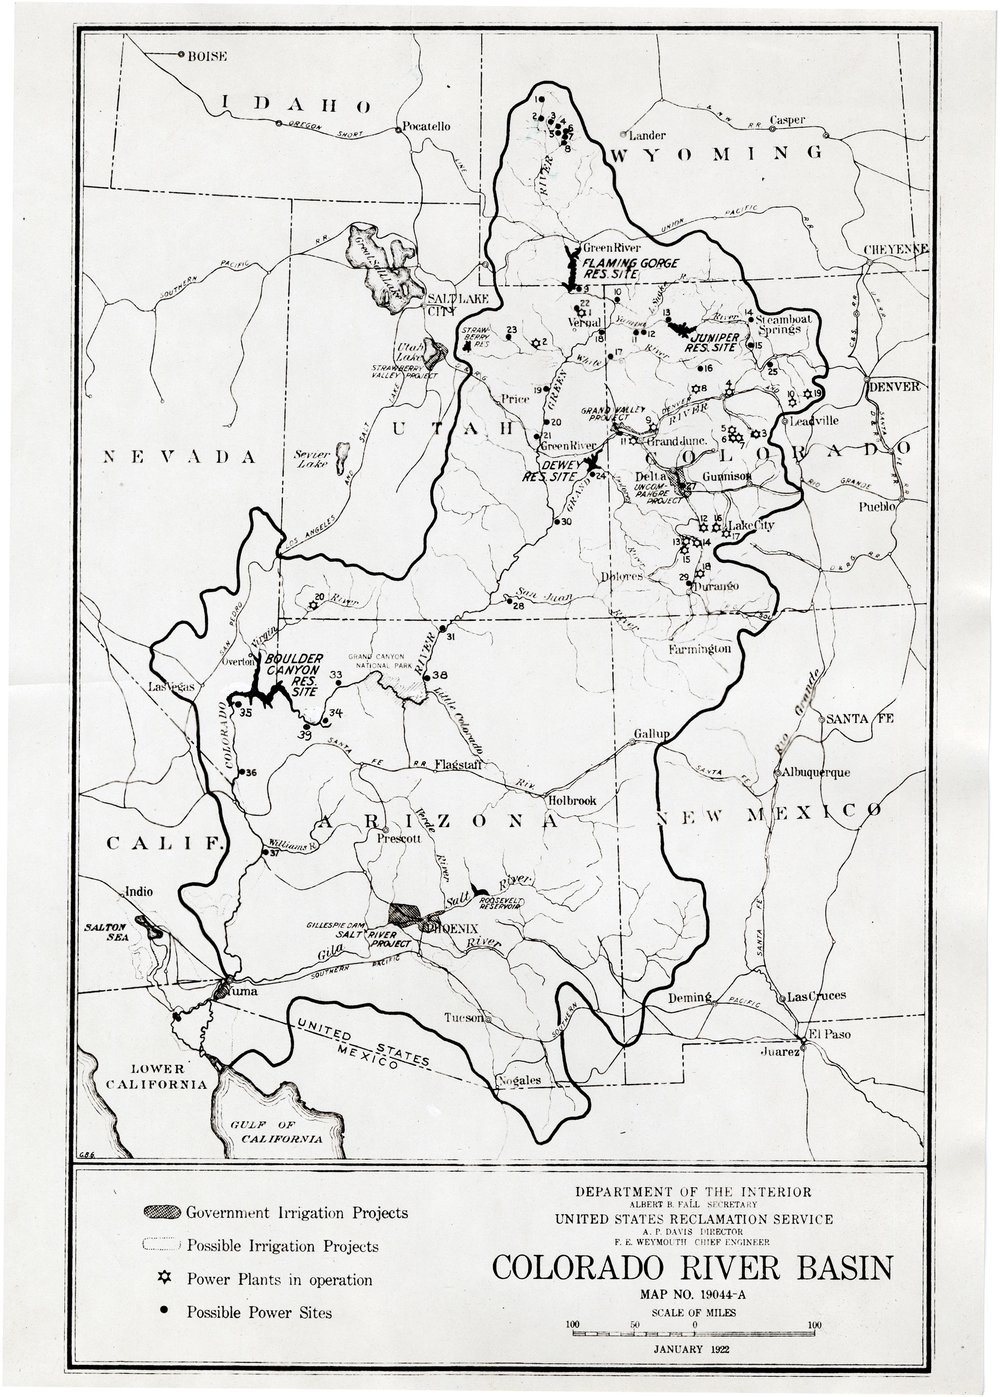 MAP OF THE COLORADO RIVER BASIN MADE BY THE BUREAU OF RECLAMATION IN 1922 (SERIES 13912). PHOTO COURTESY OF THE UTAH STATE ARCHIVES AND RECORDS SERVICE.